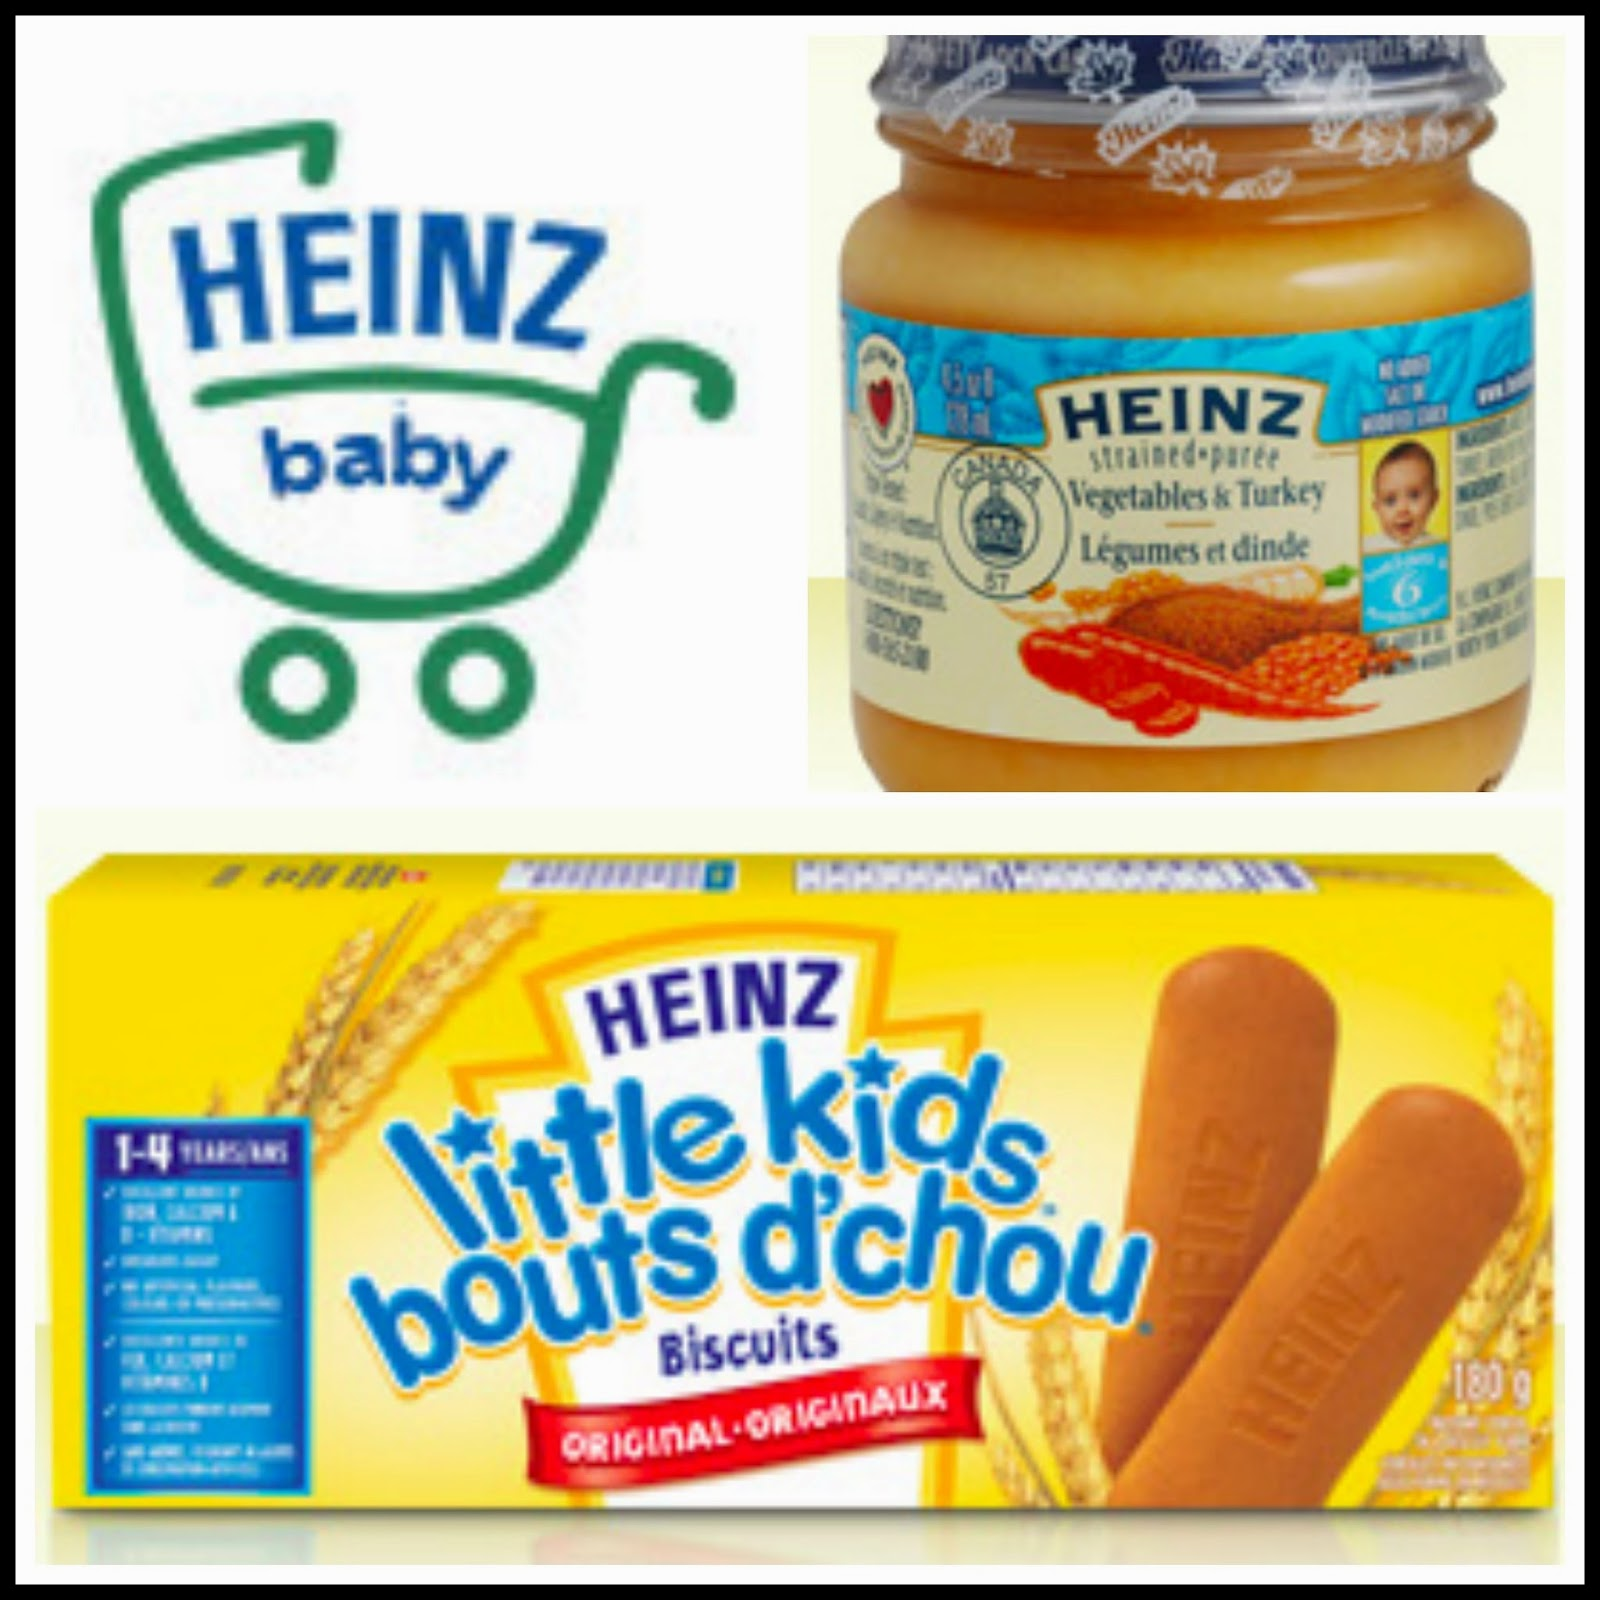 Heinz Baby Food Yyz Bambina Tips For Babys First Christmas With Only Has One Document It As Best You Can I Appreciate All The Videos And Photos We Have Think Hannah